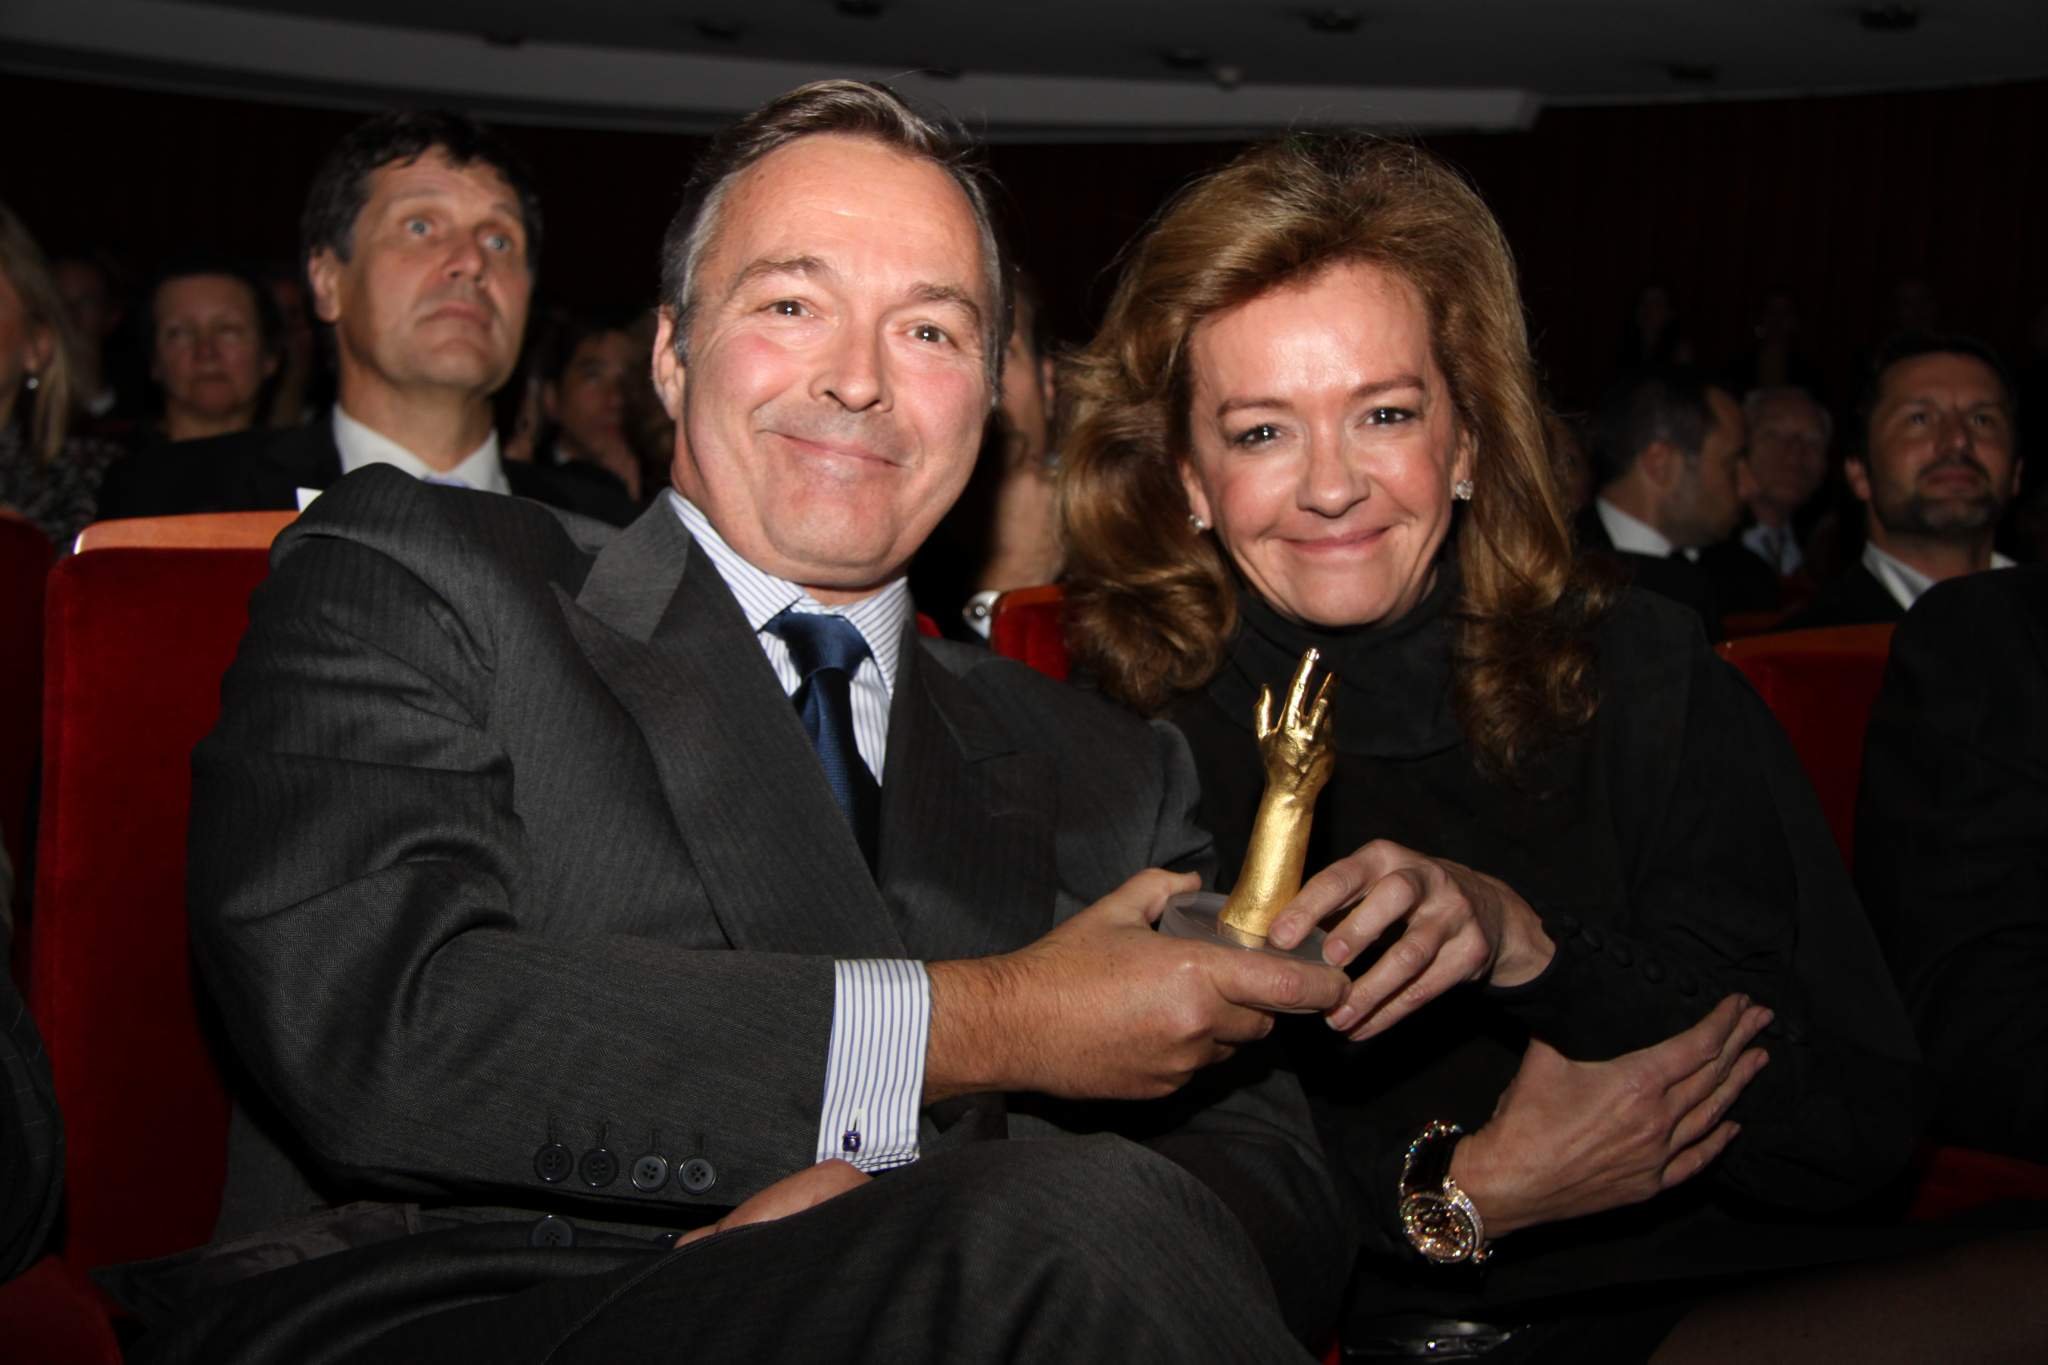 Karl Friedrich-Scheufele and Carloine Gruosi-Scheufele (Co-presidents of Chopard) at the prize-giving ceremony of the GPHG 2011